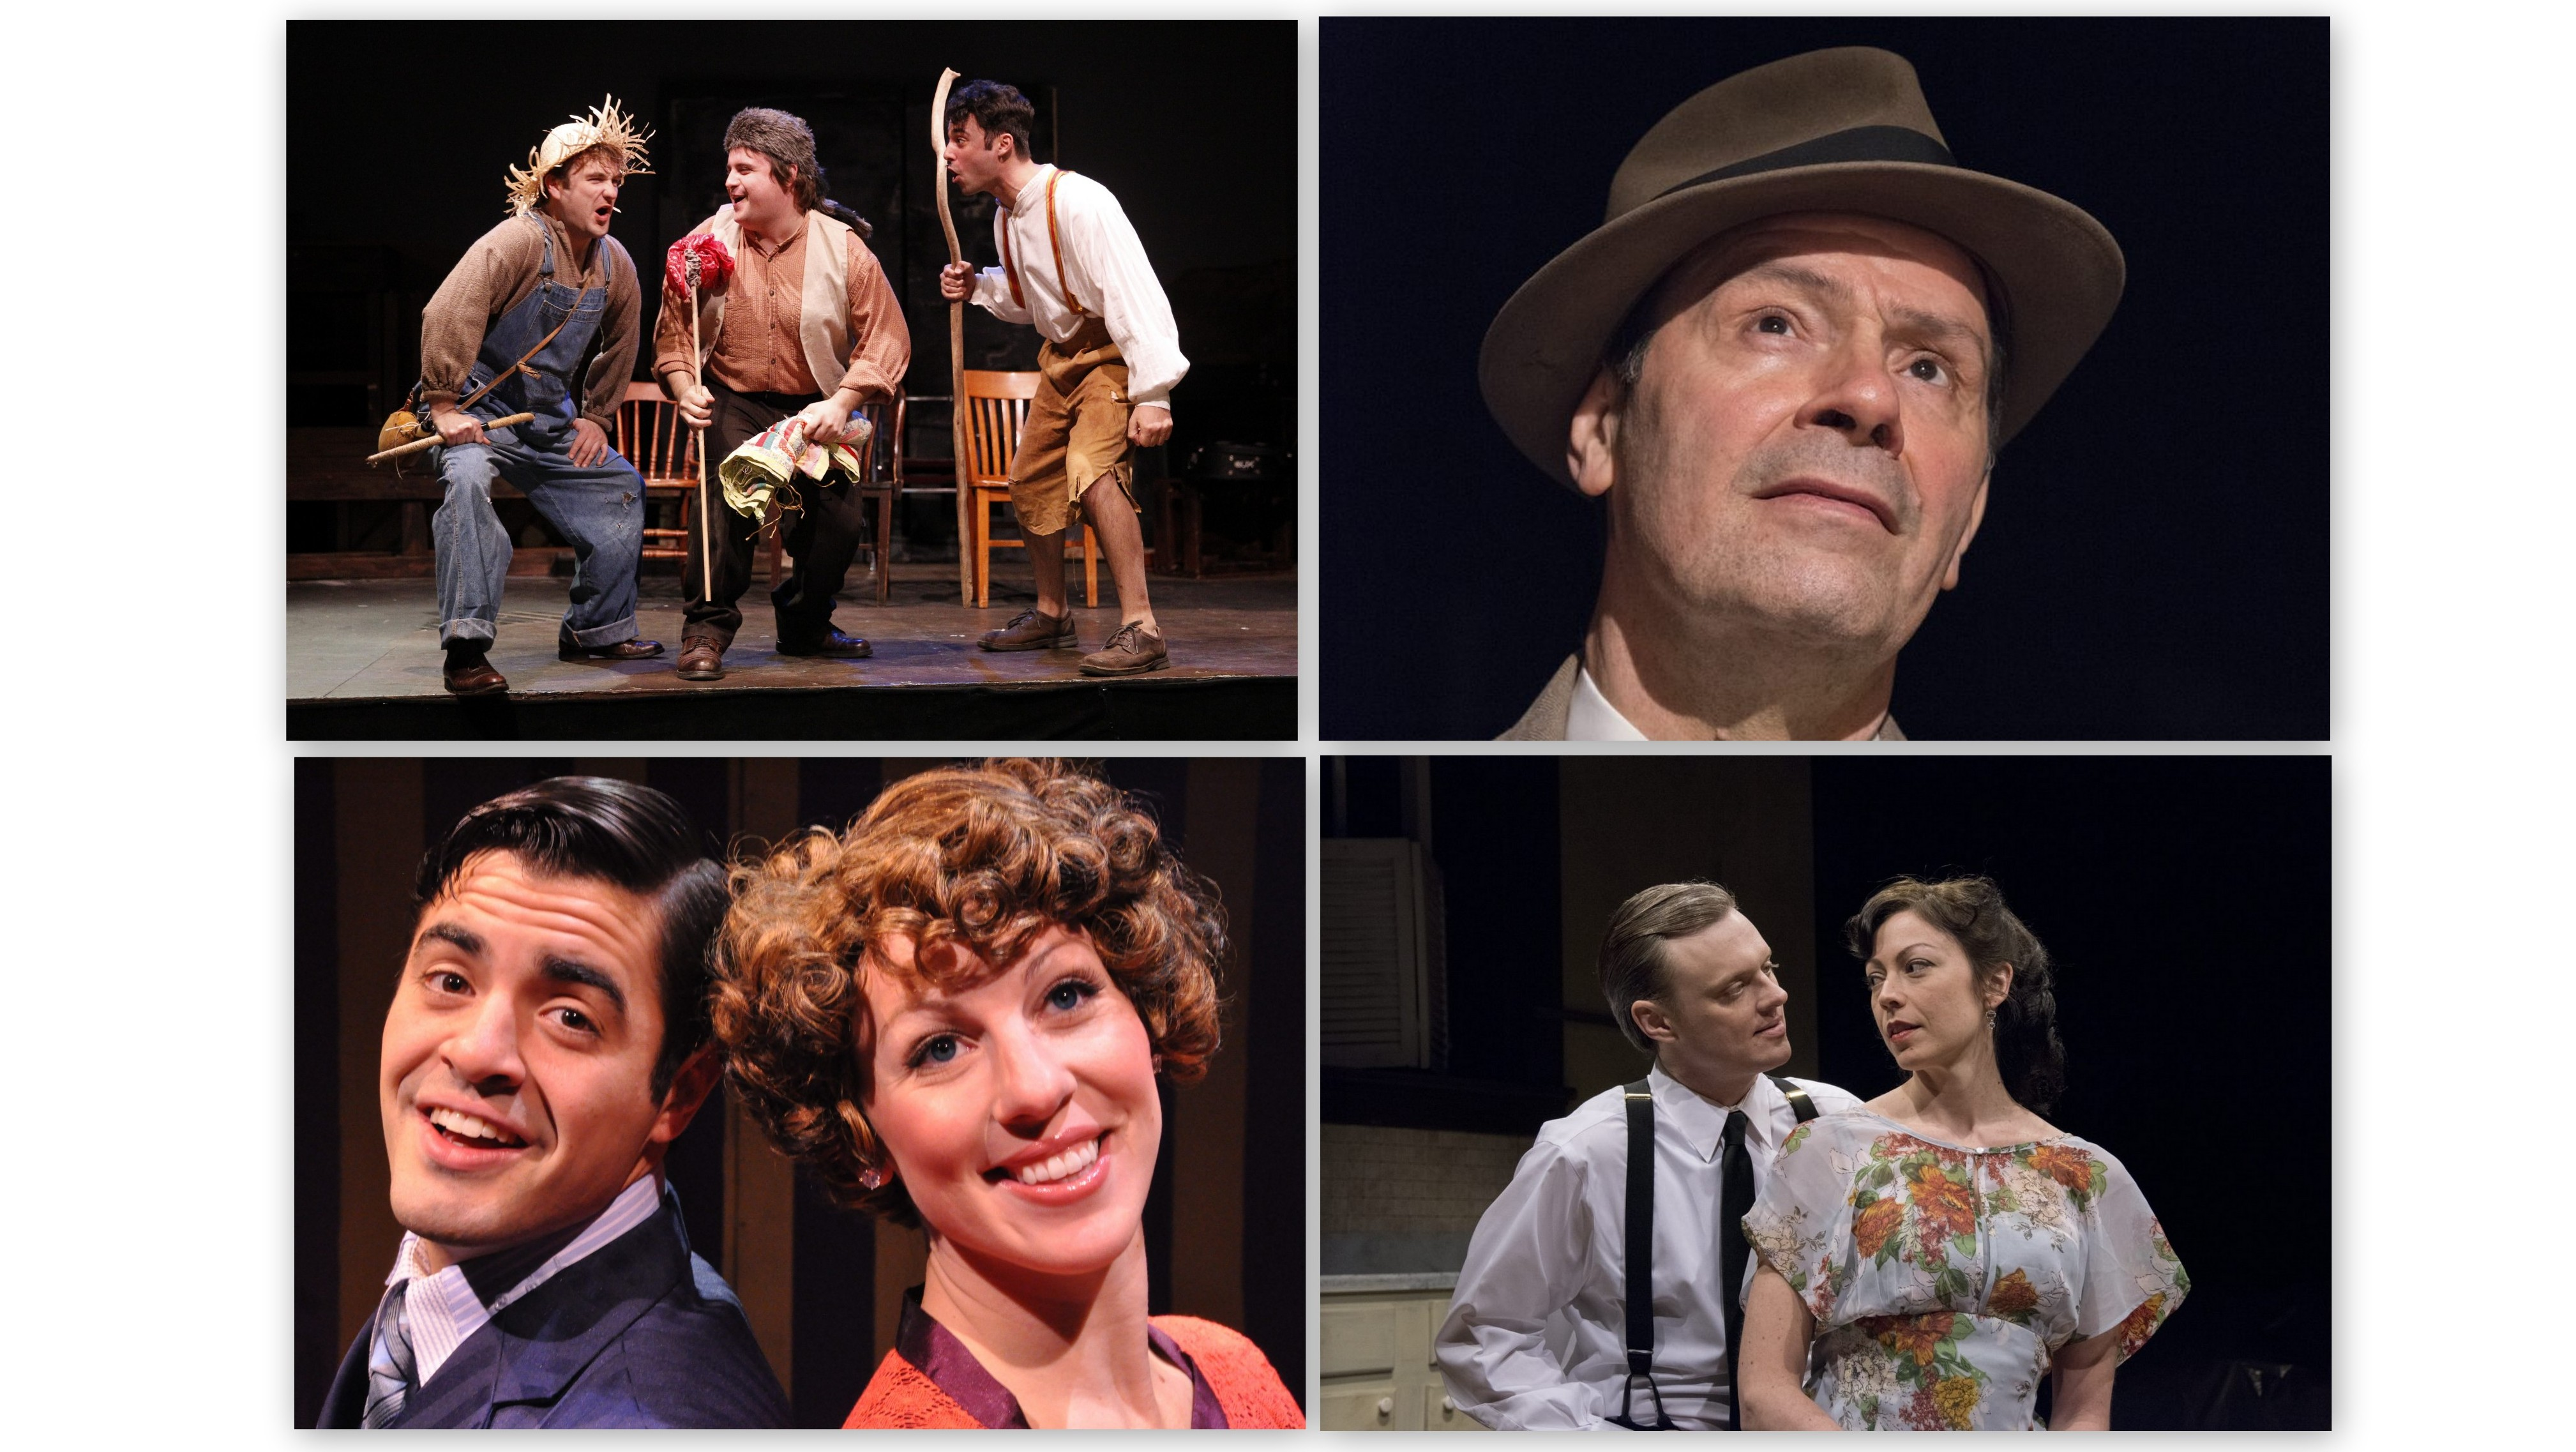 Winners at the 25th annual Artie Awards, clockwise from top left: 'The Adventures of Tom Sawyer,' John Fredo in 'Death of a Salesman,' Kate LoConti in 'After Miss Julie' and the ensemble of 'The Drowsy Chaperone.'